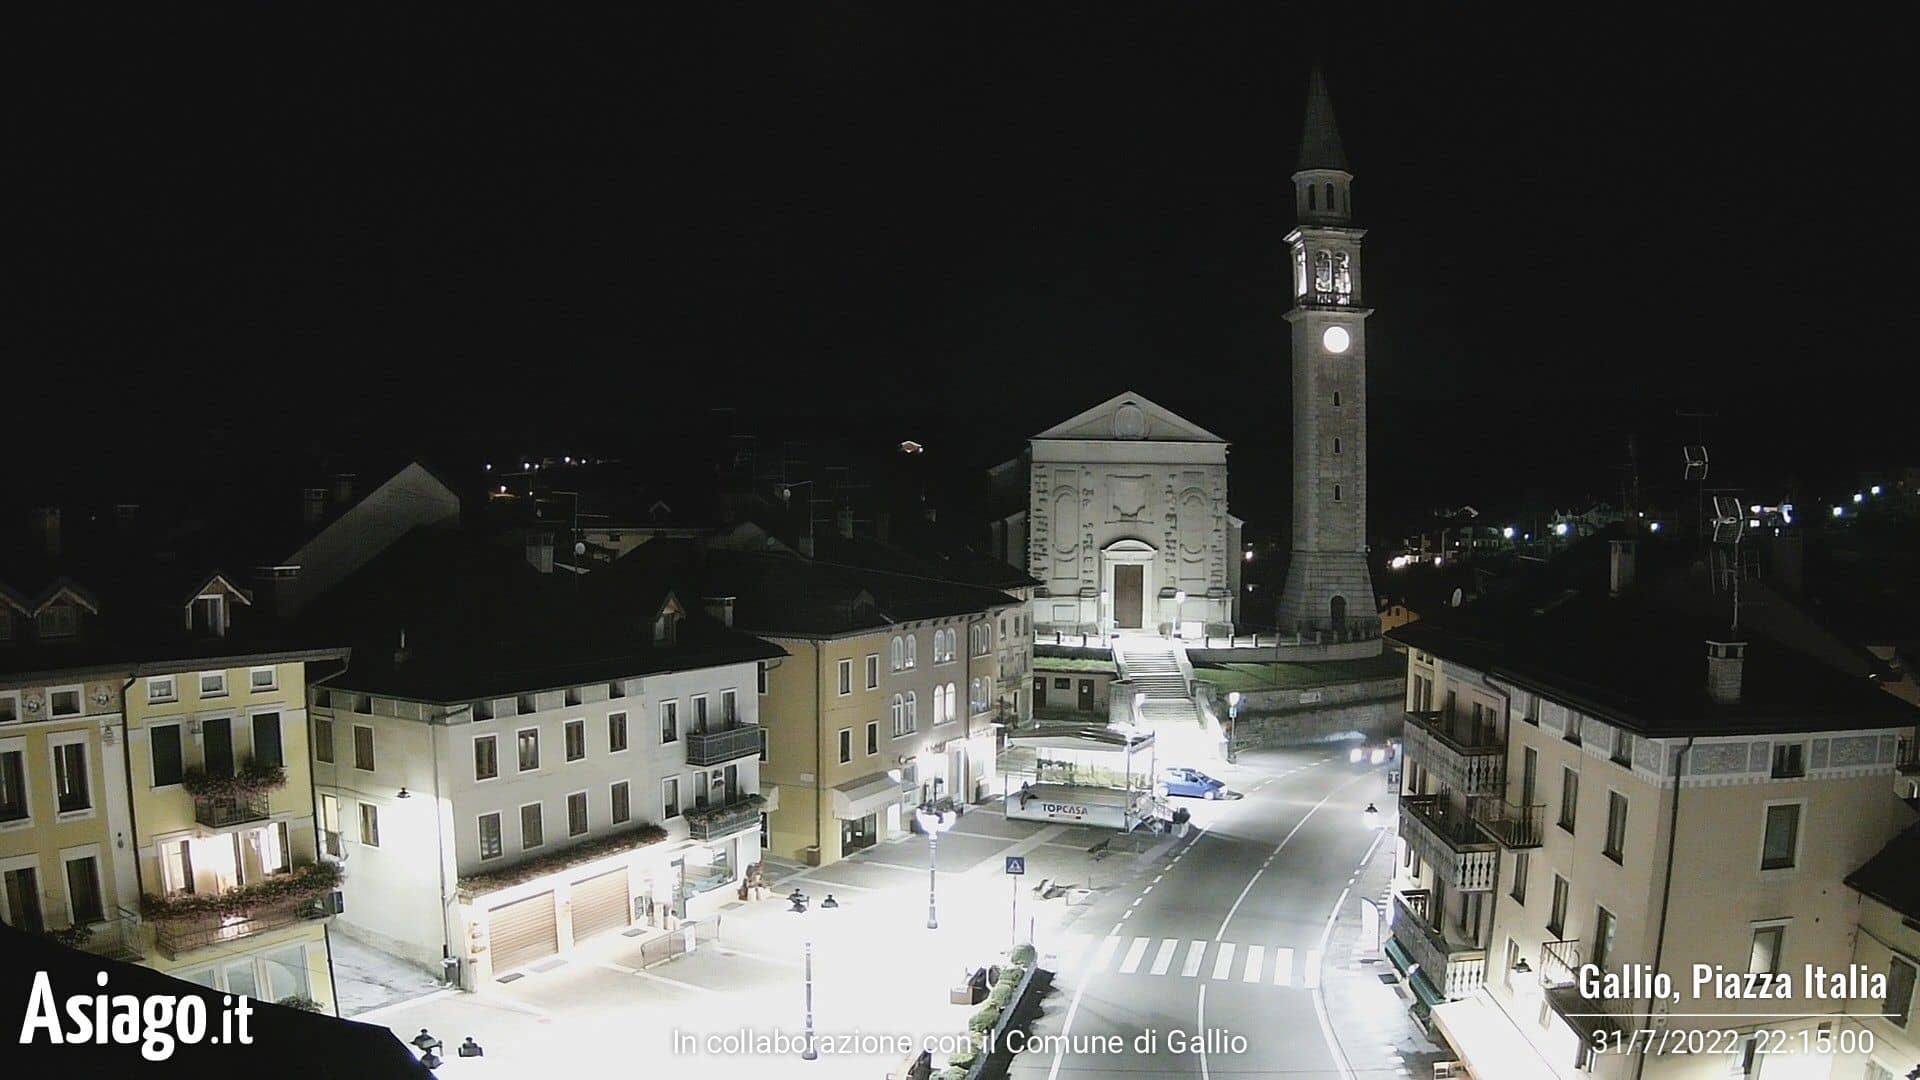 Webcam live su Piazza Italia a Gallio